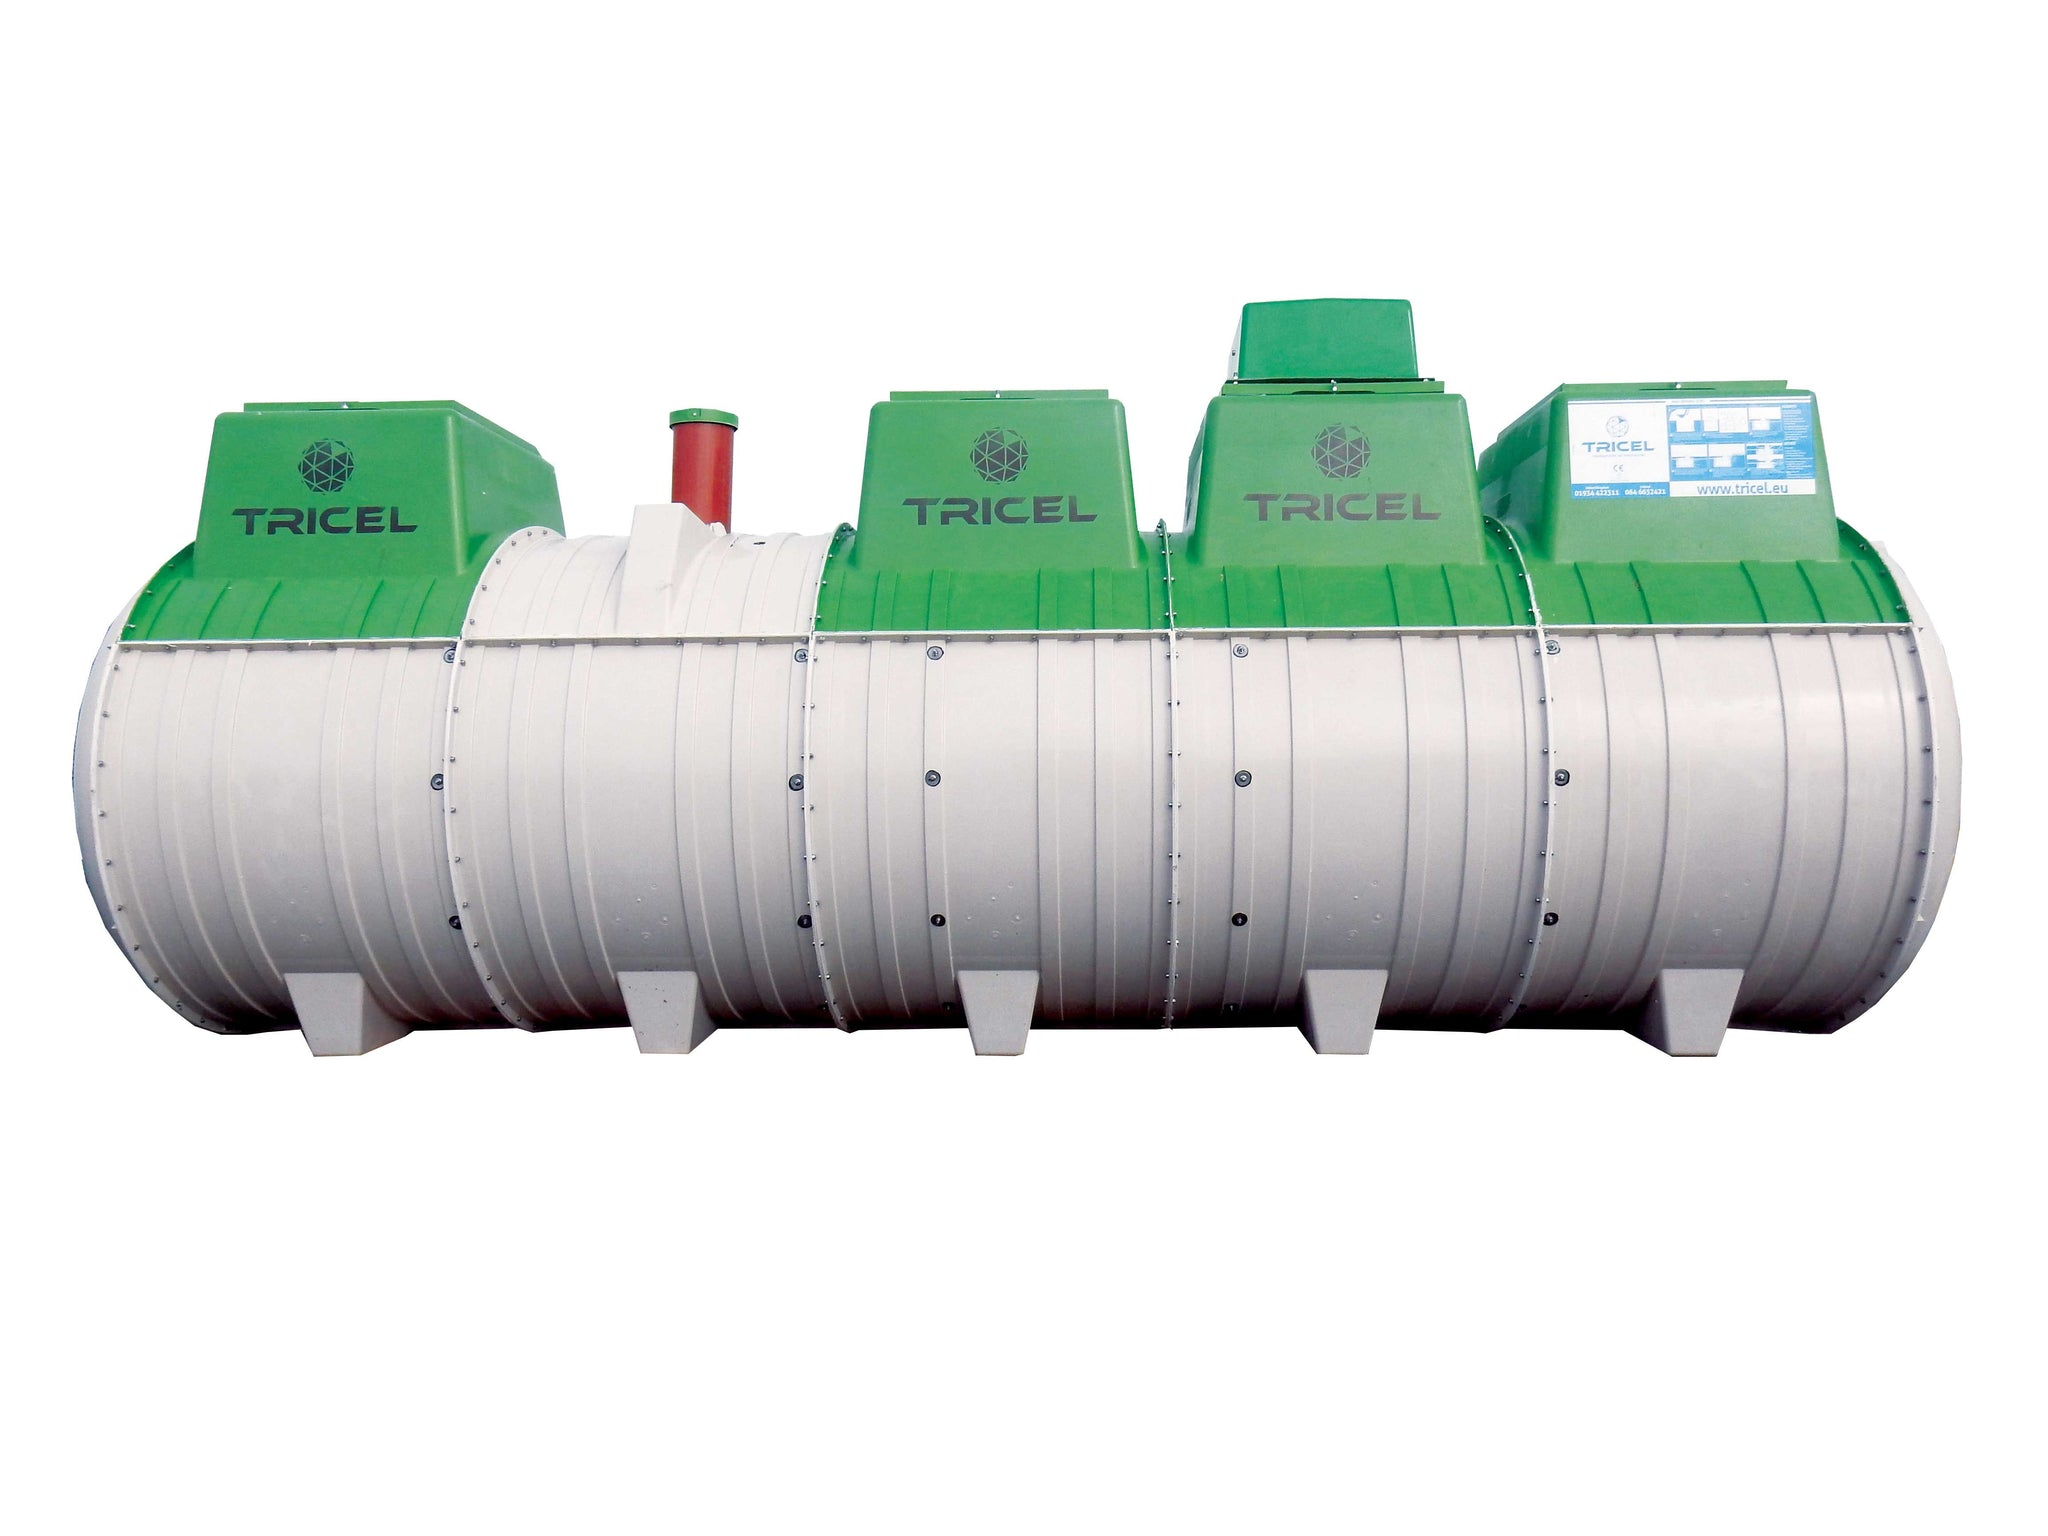 Tricel Novo UK24 Sewage Treatment System (up to 24 Population)